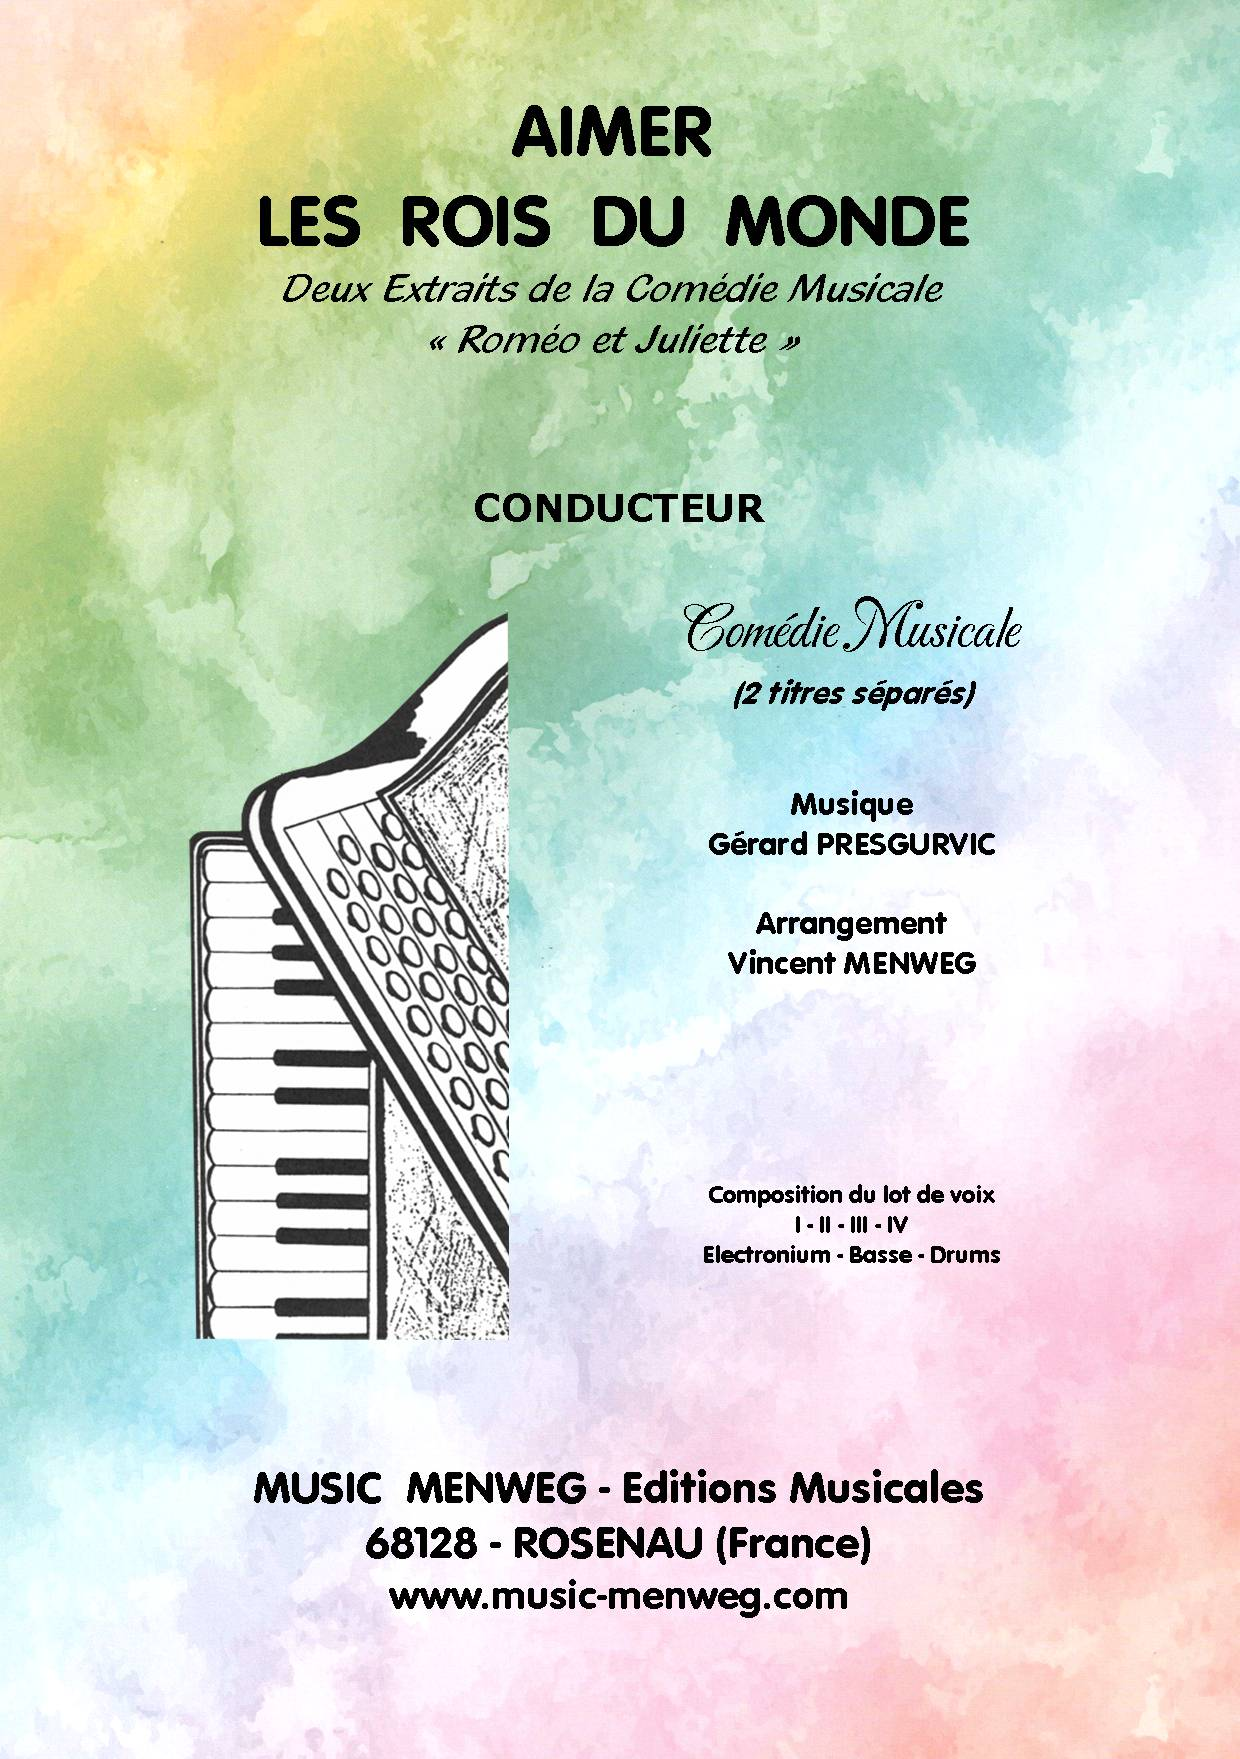 Accordeon Orchestrations